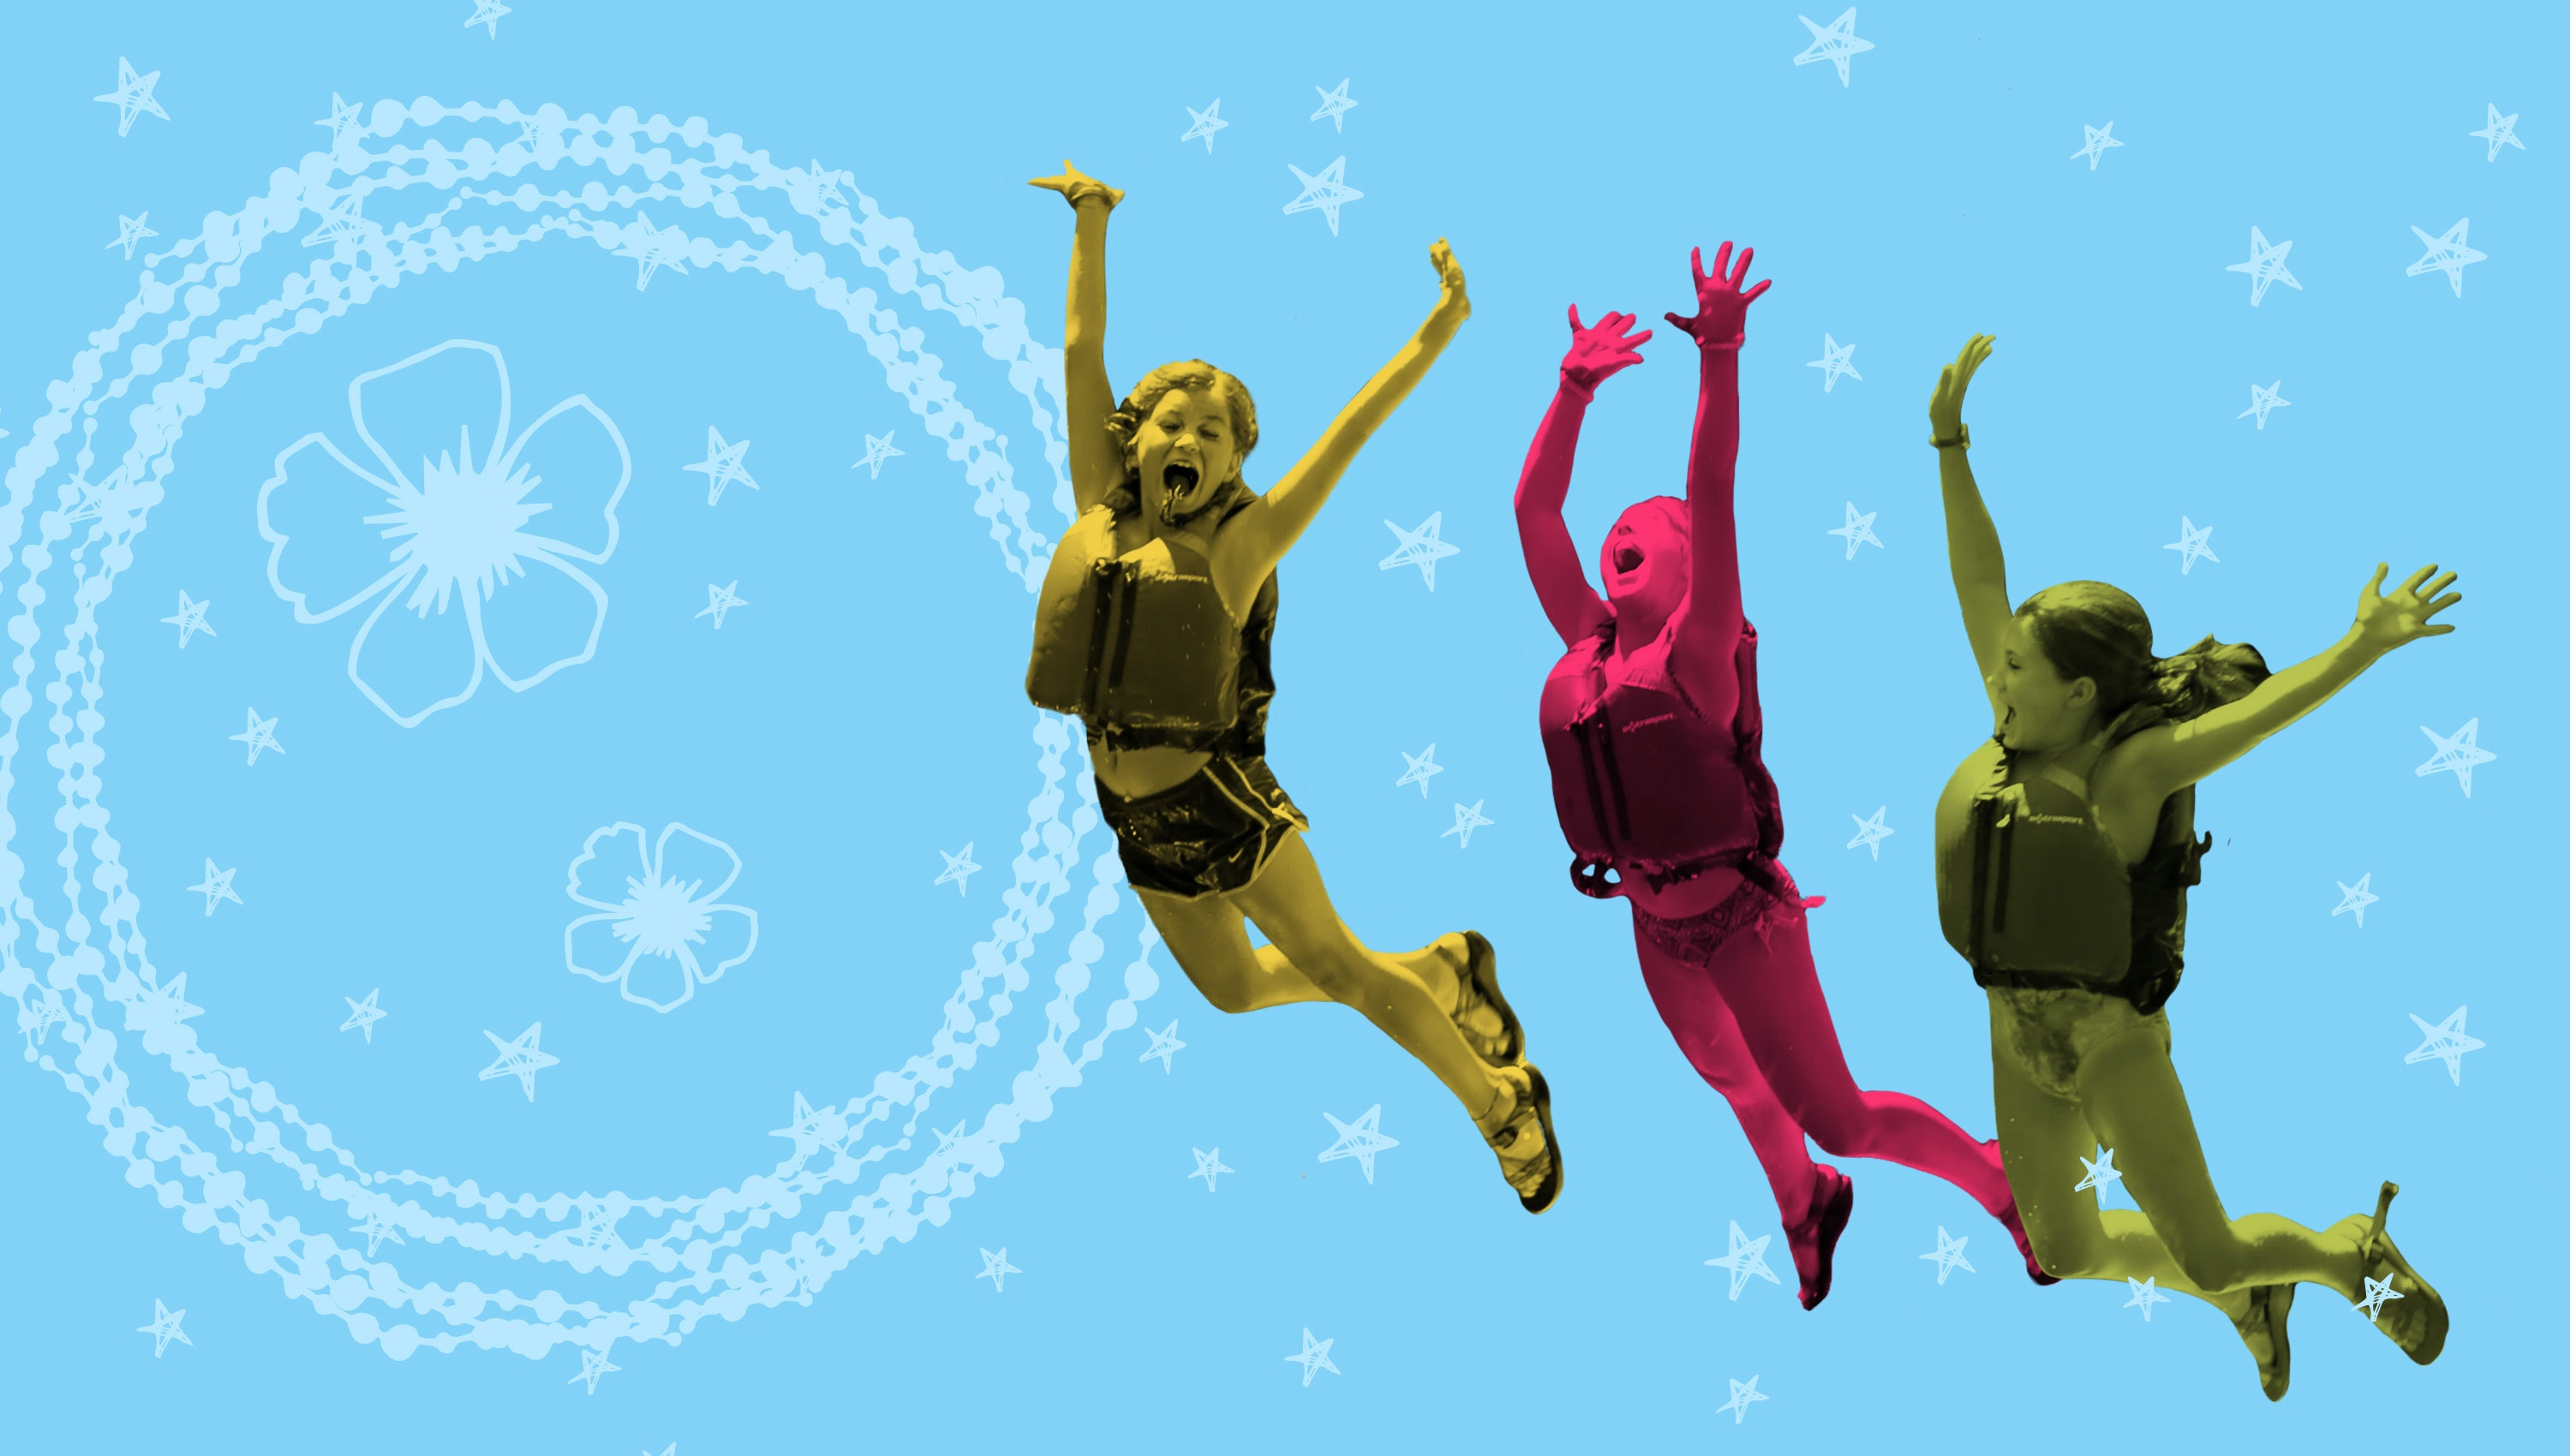 Three girl jump.jpg?ixlib=rails 2.1